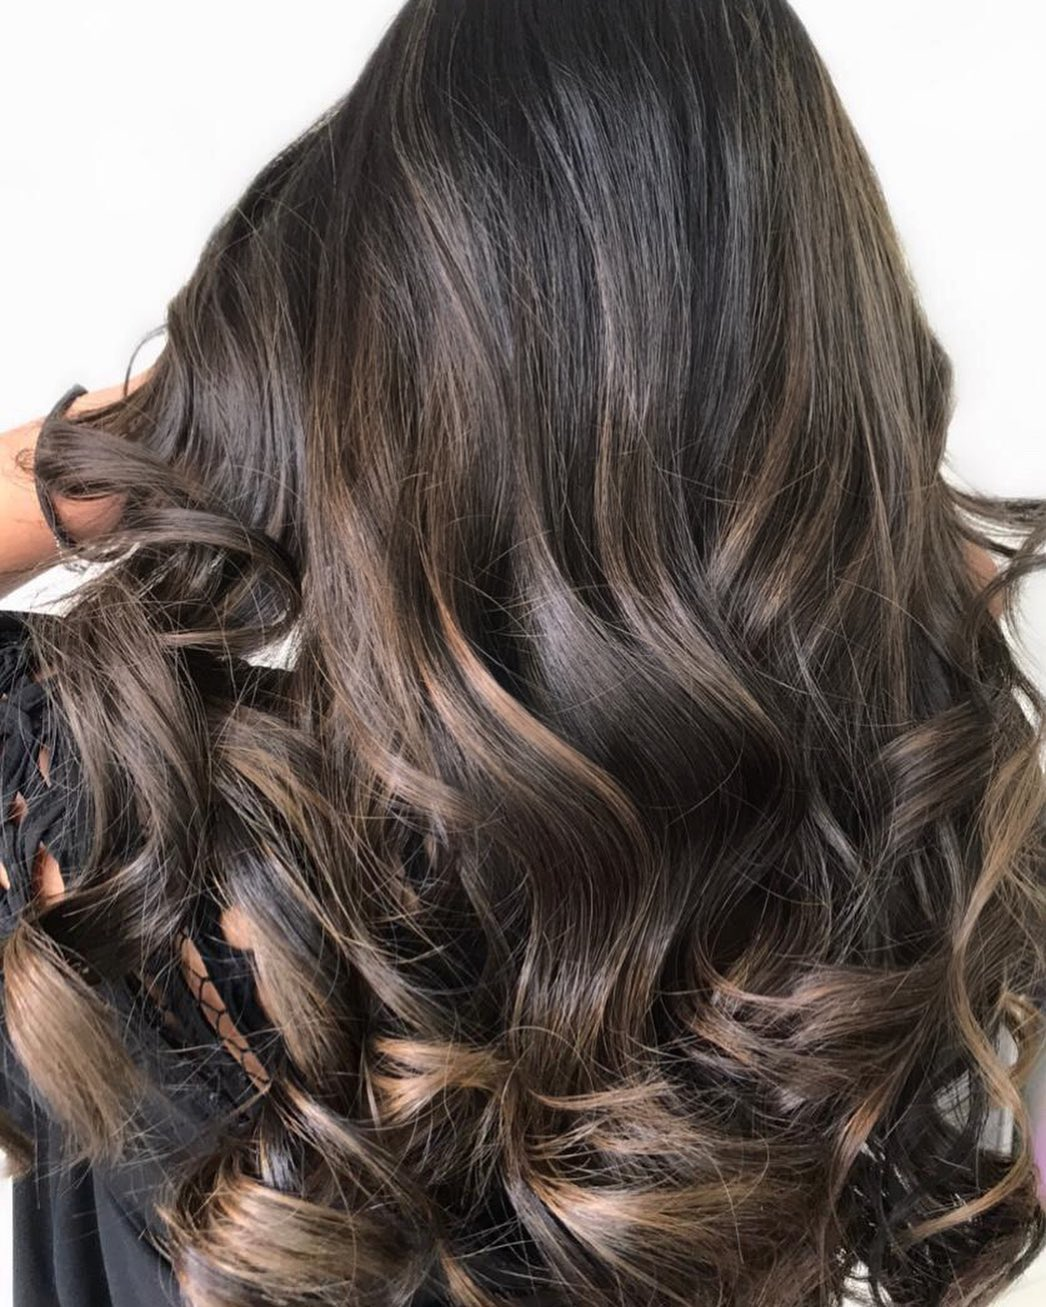 Instagram Balayage in Oxford Street, Central London at Gusto Hairdressing